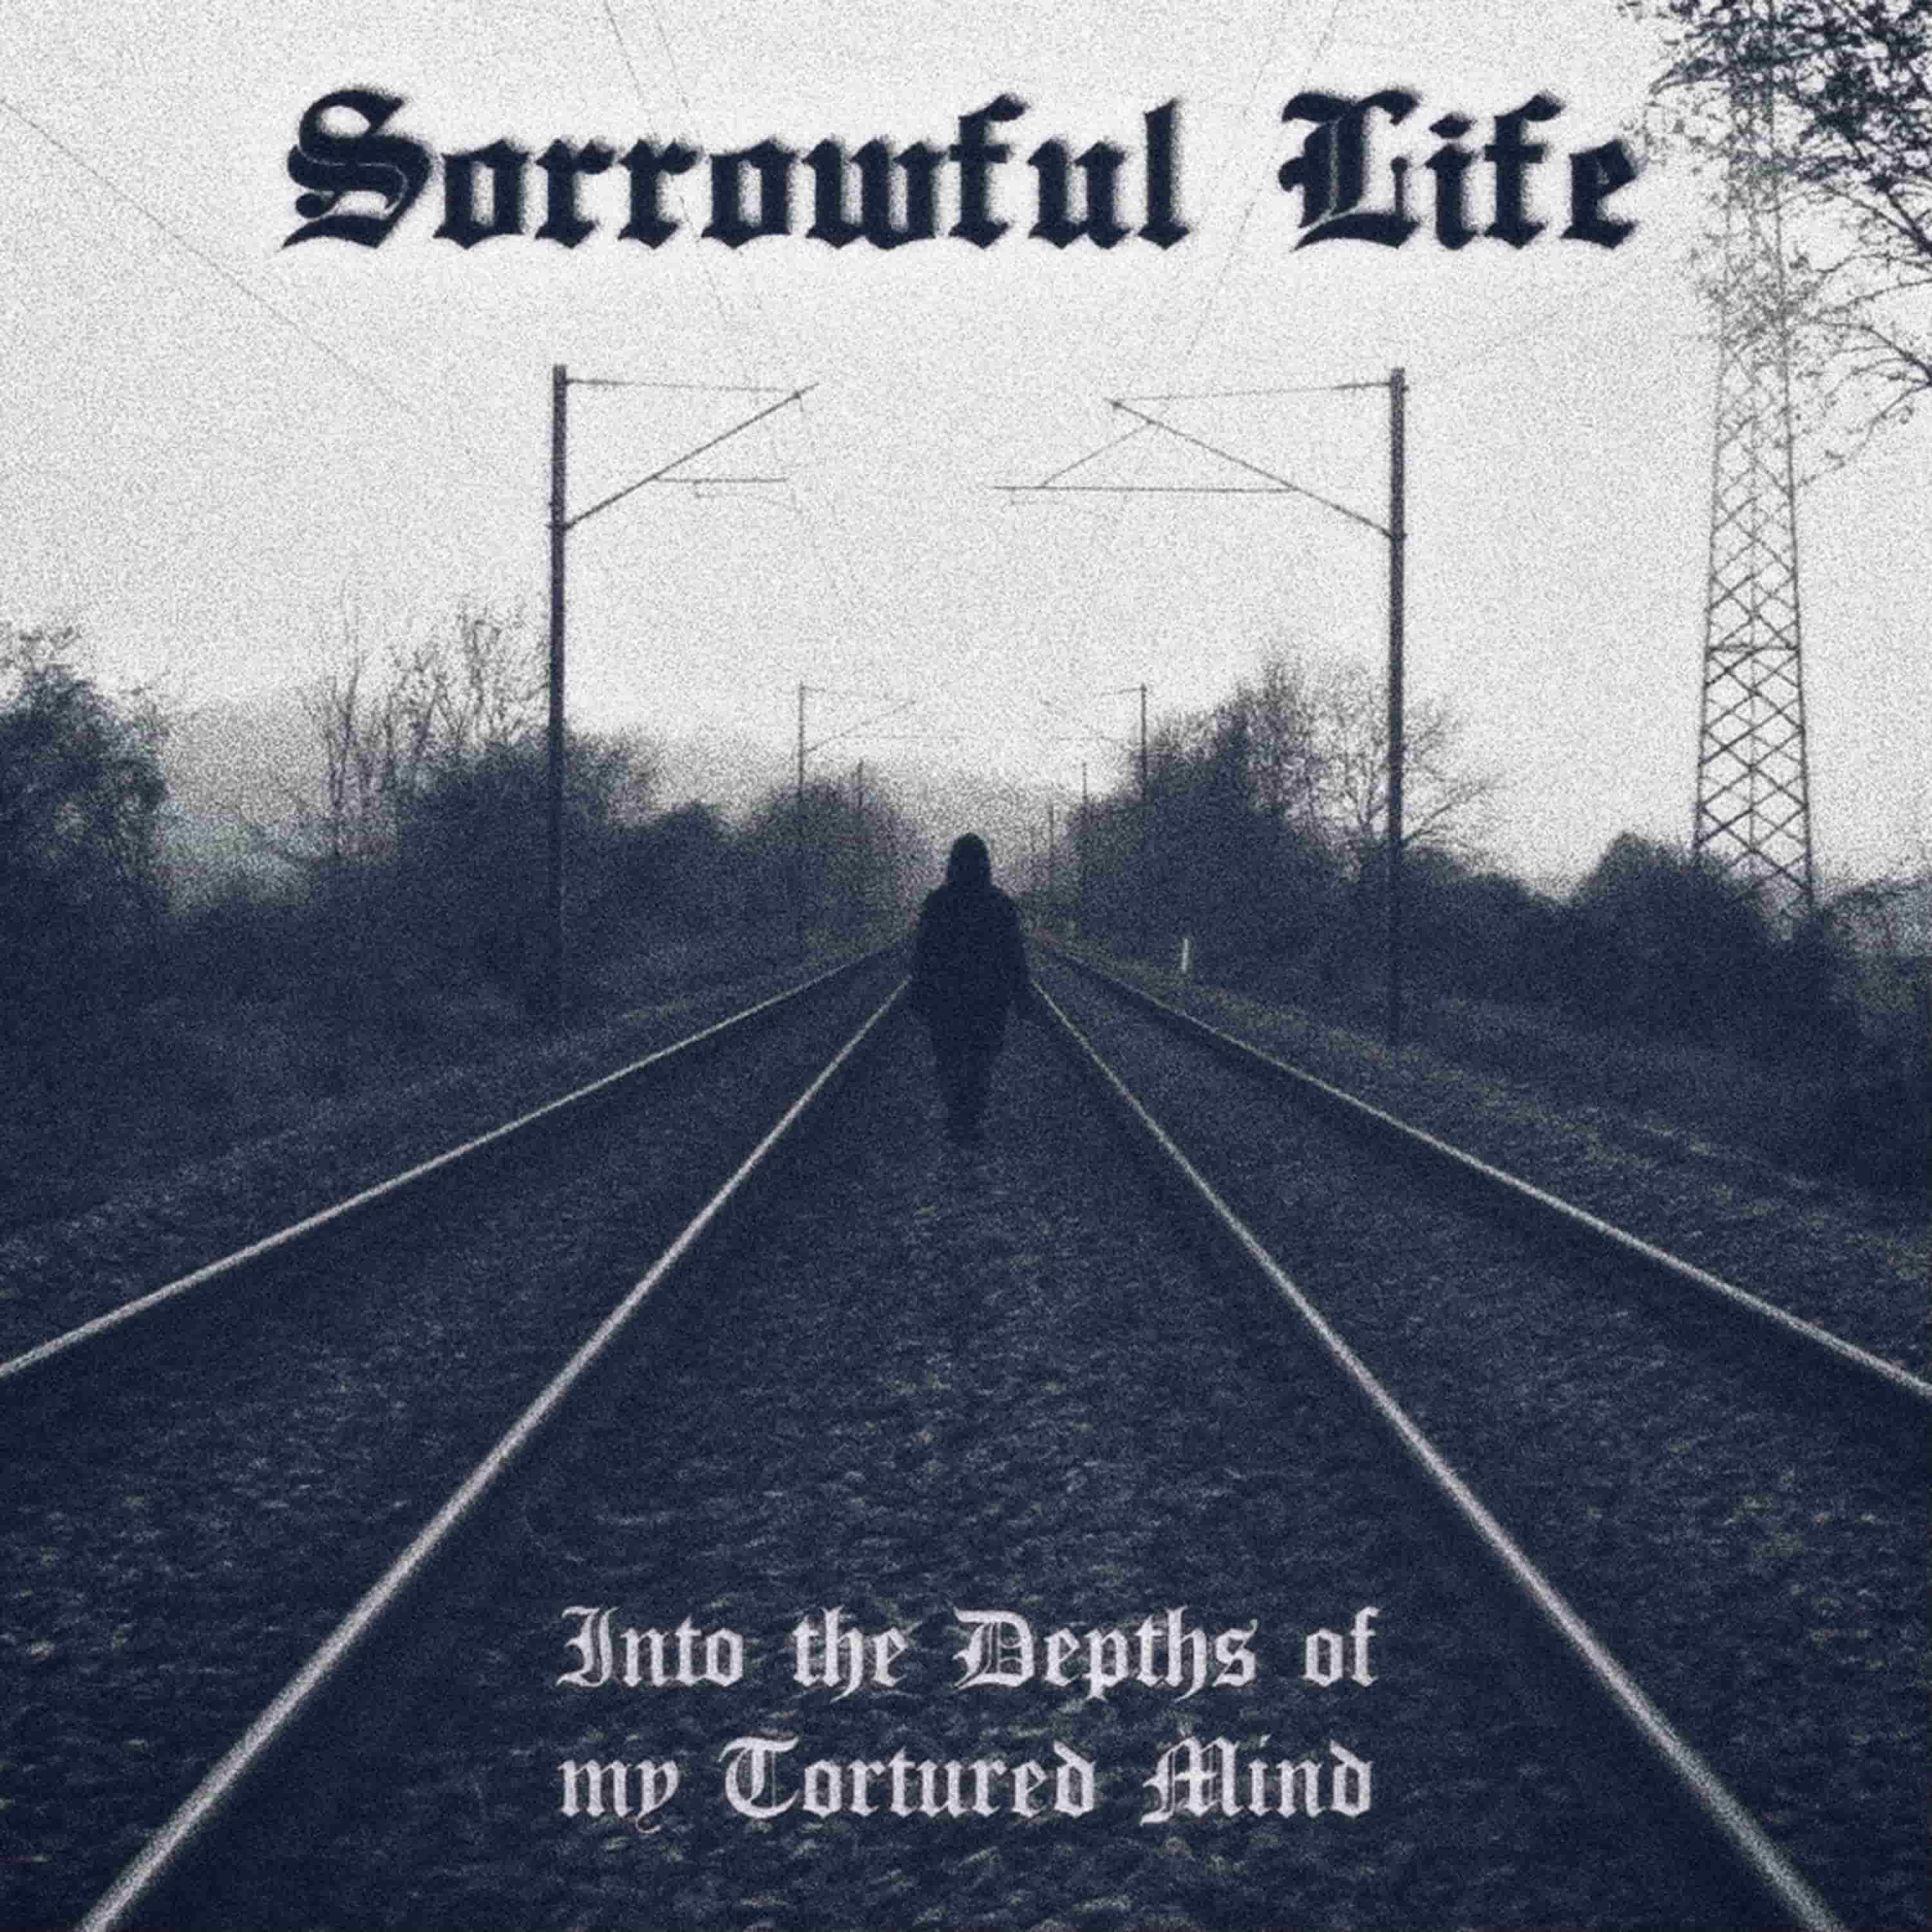 Sorrowful Life - Into the Depths of My Tortured Mind